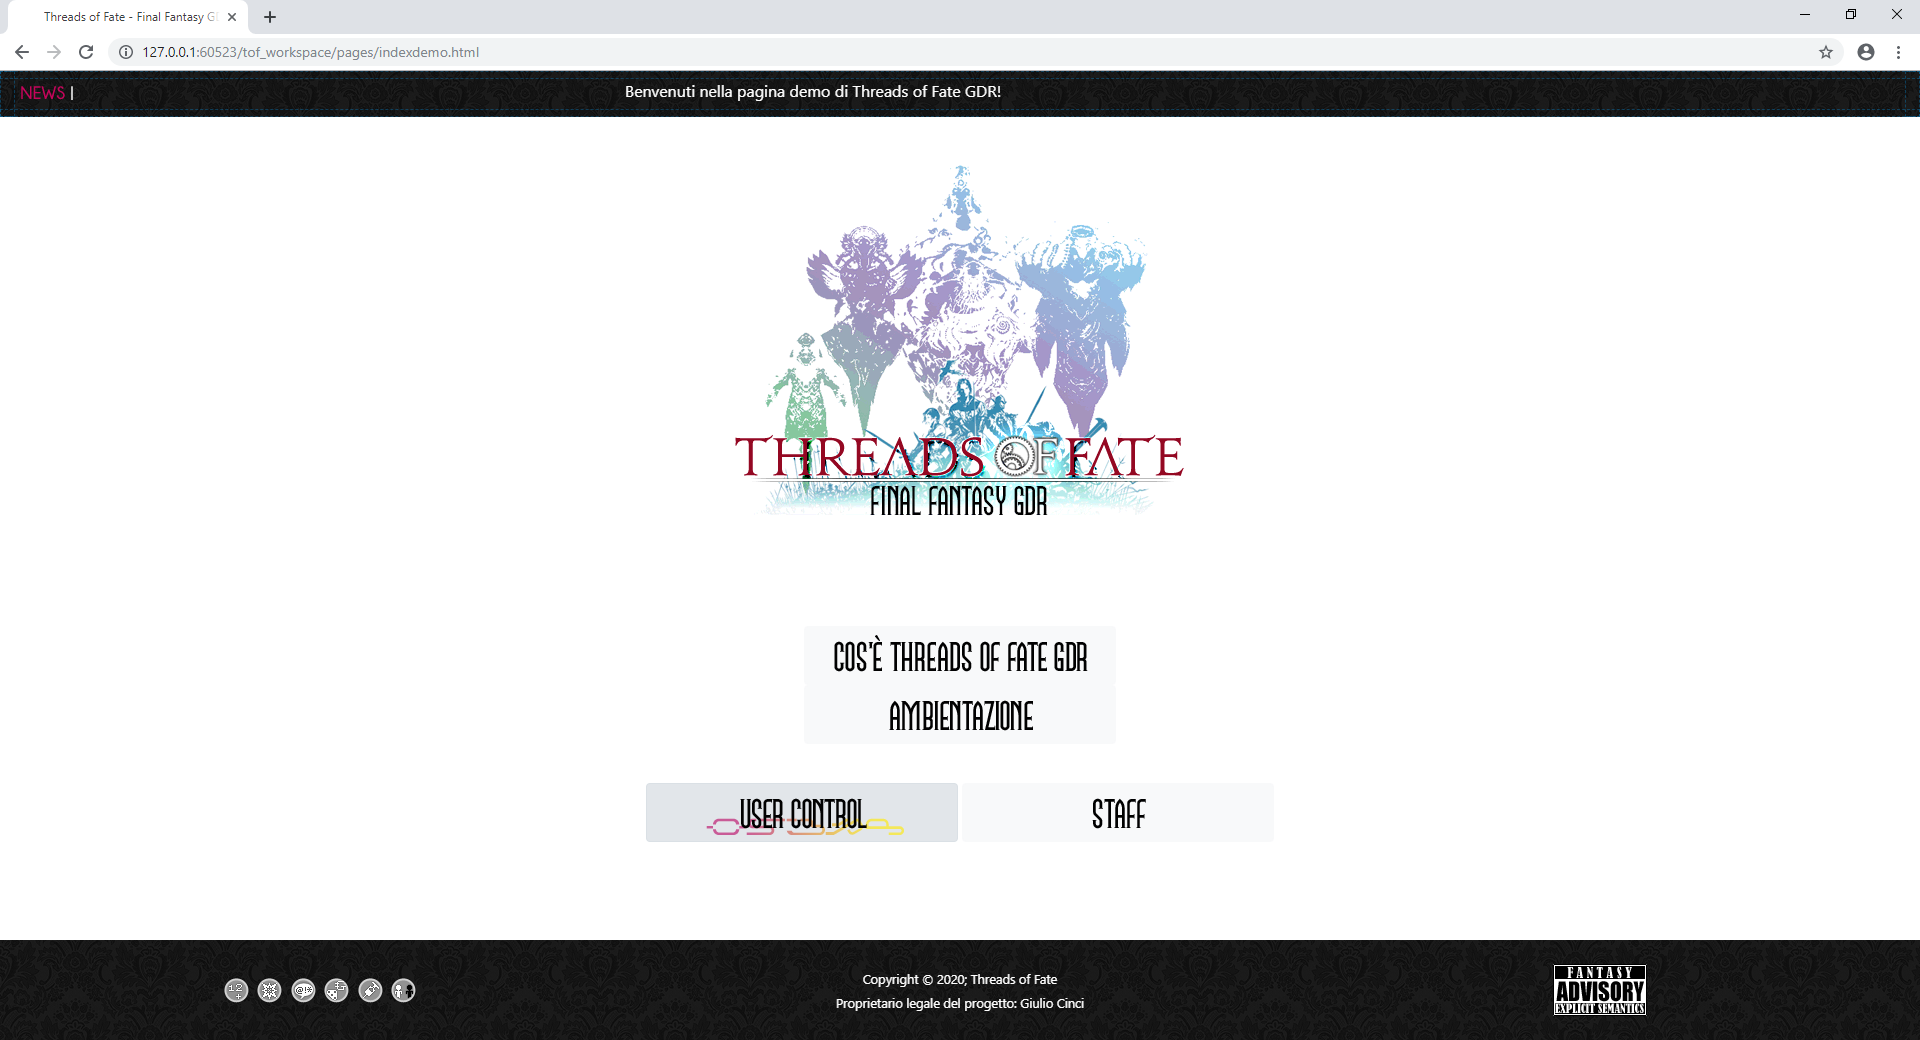 Threads of Fate GDR